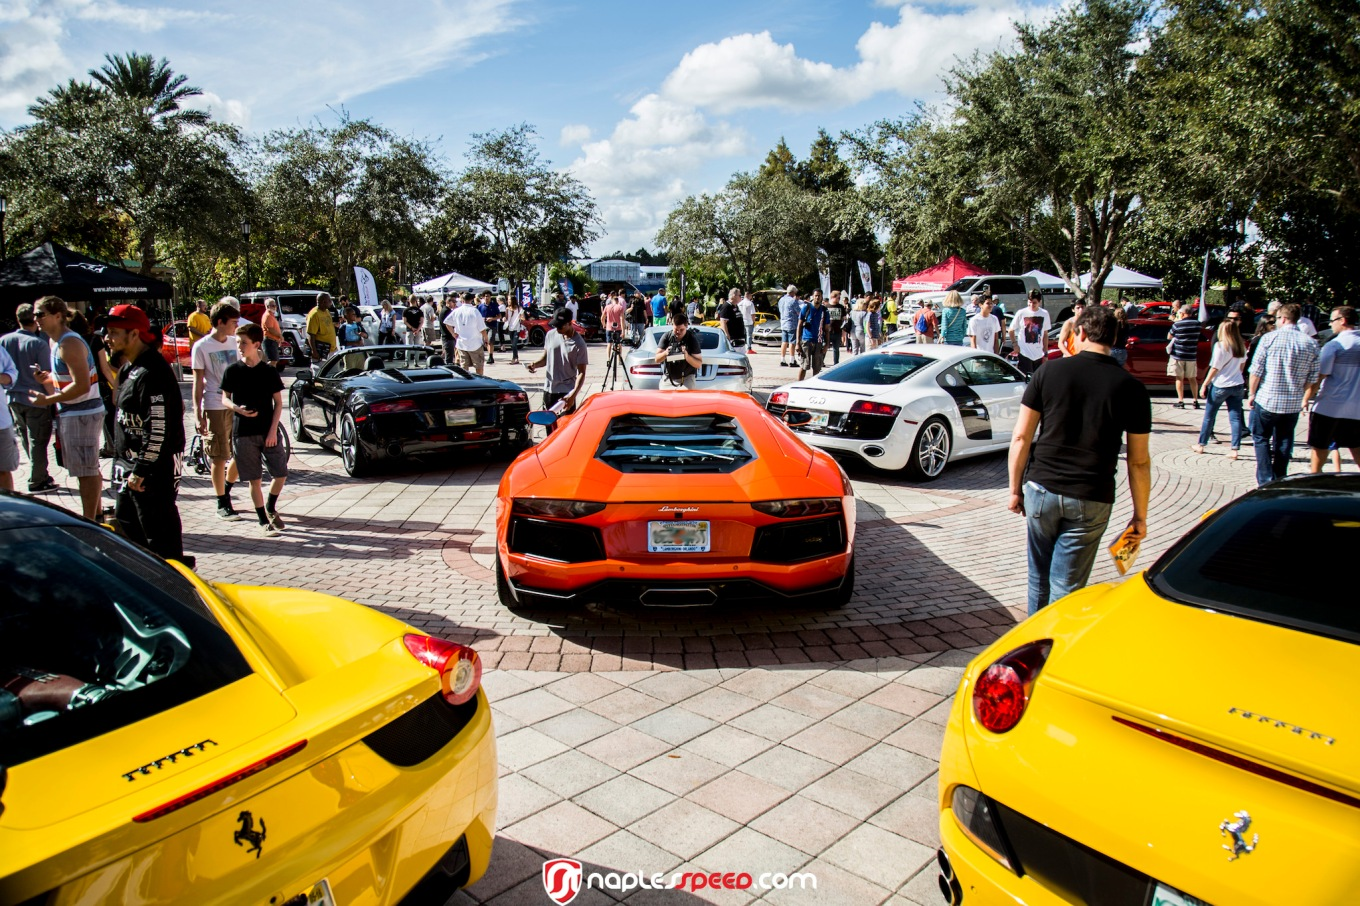 Orlando Festival Of Speed A Weekend Of Luxurious Automotive - Car show in orlando this weekend